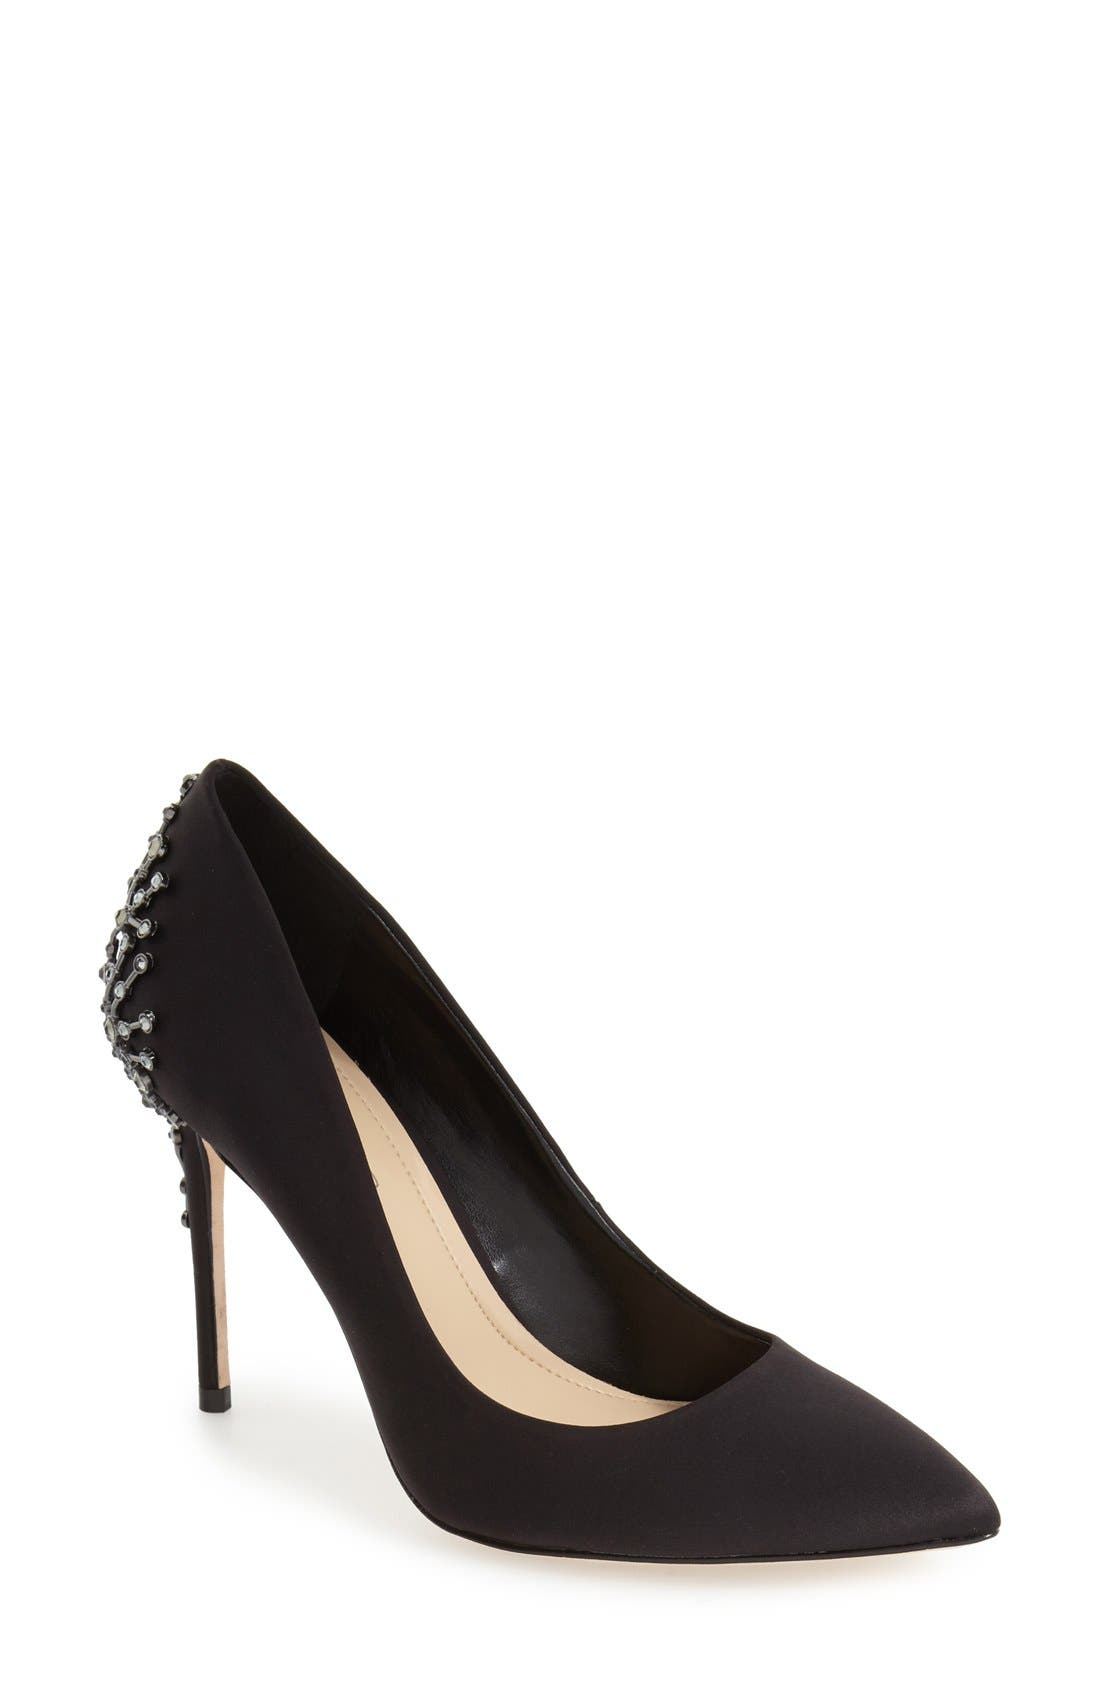 Main Image - Imagine by Vince Camuto Crystal Embellished Pump (Women)